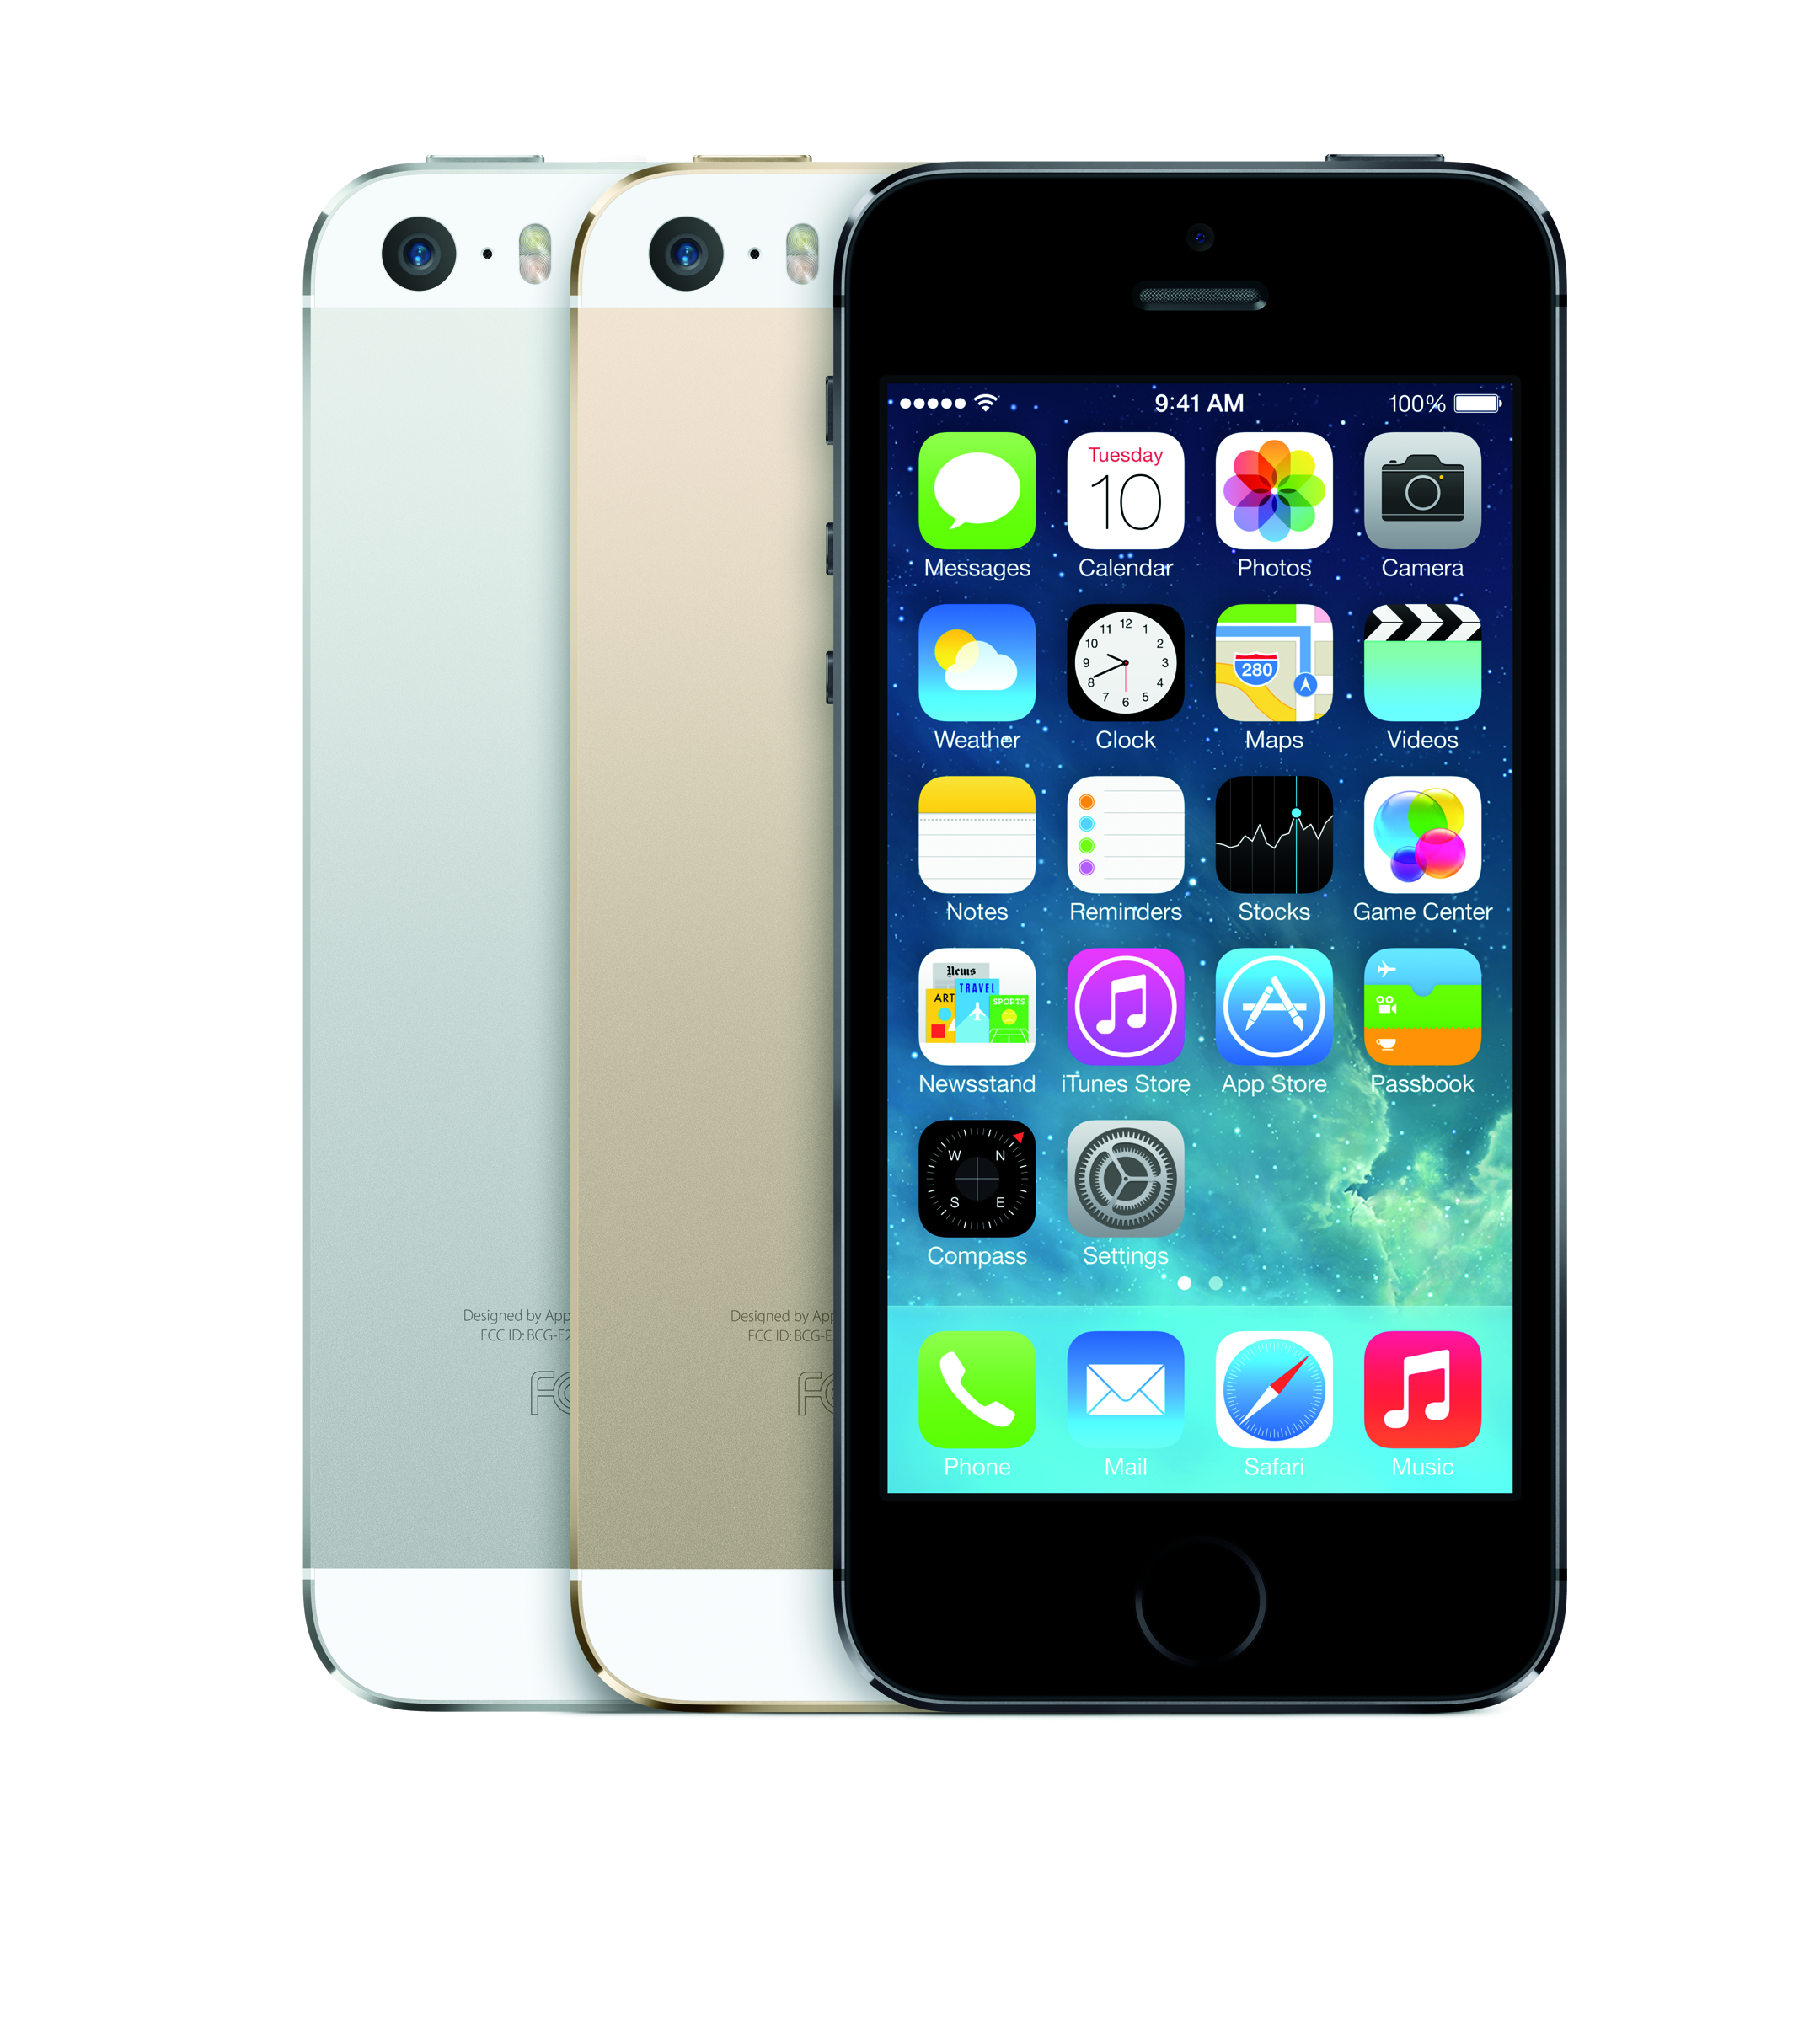 Apple Iphone 5s Gallery Apple Iphone 5s 3color Ios7